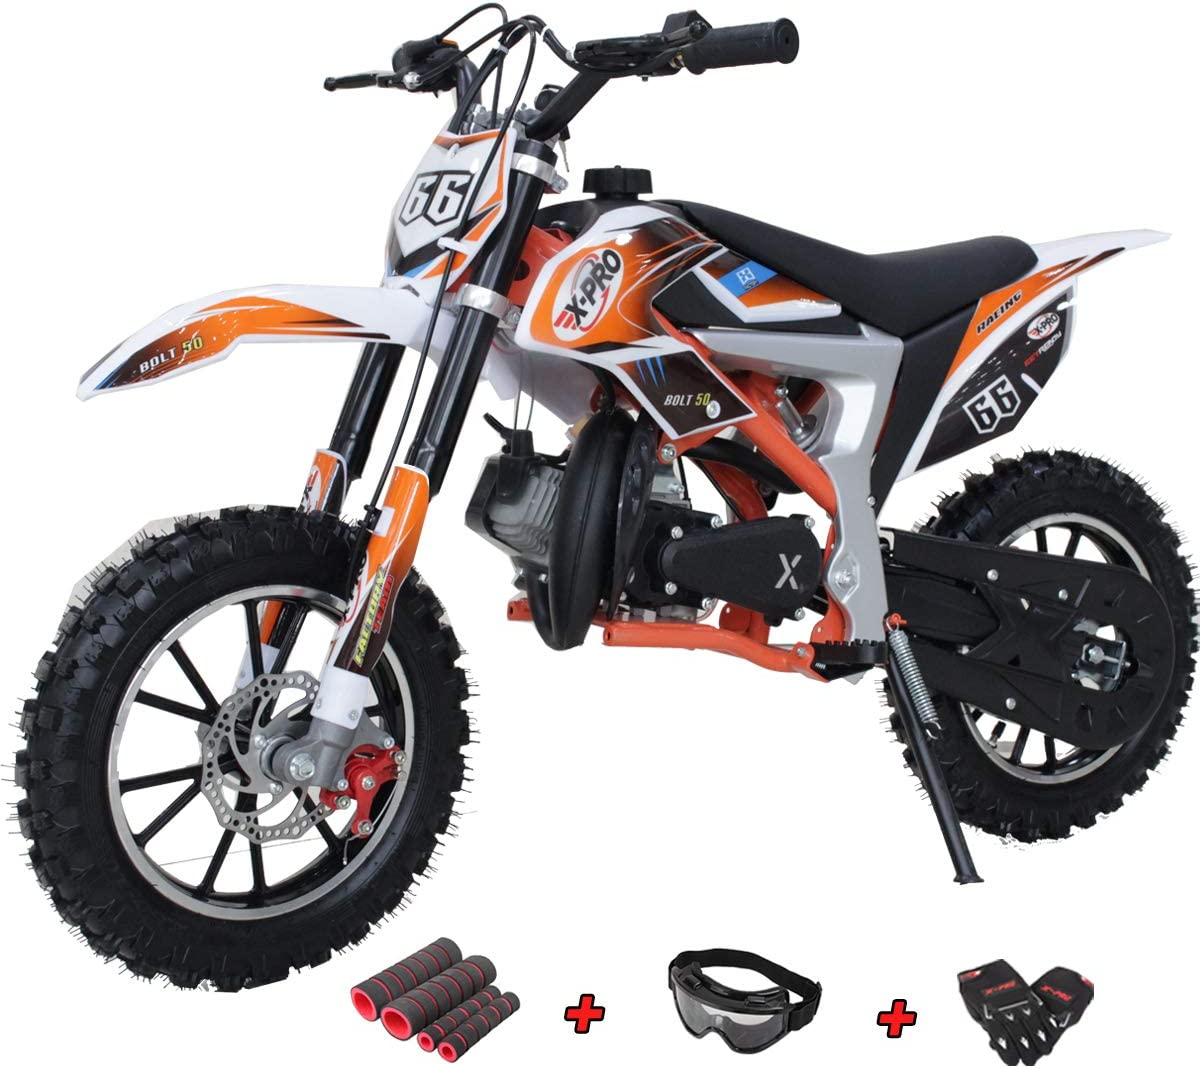 Top 12 Best Dirt Bike For Kids (2020 Reviews & Buying Guide) 10